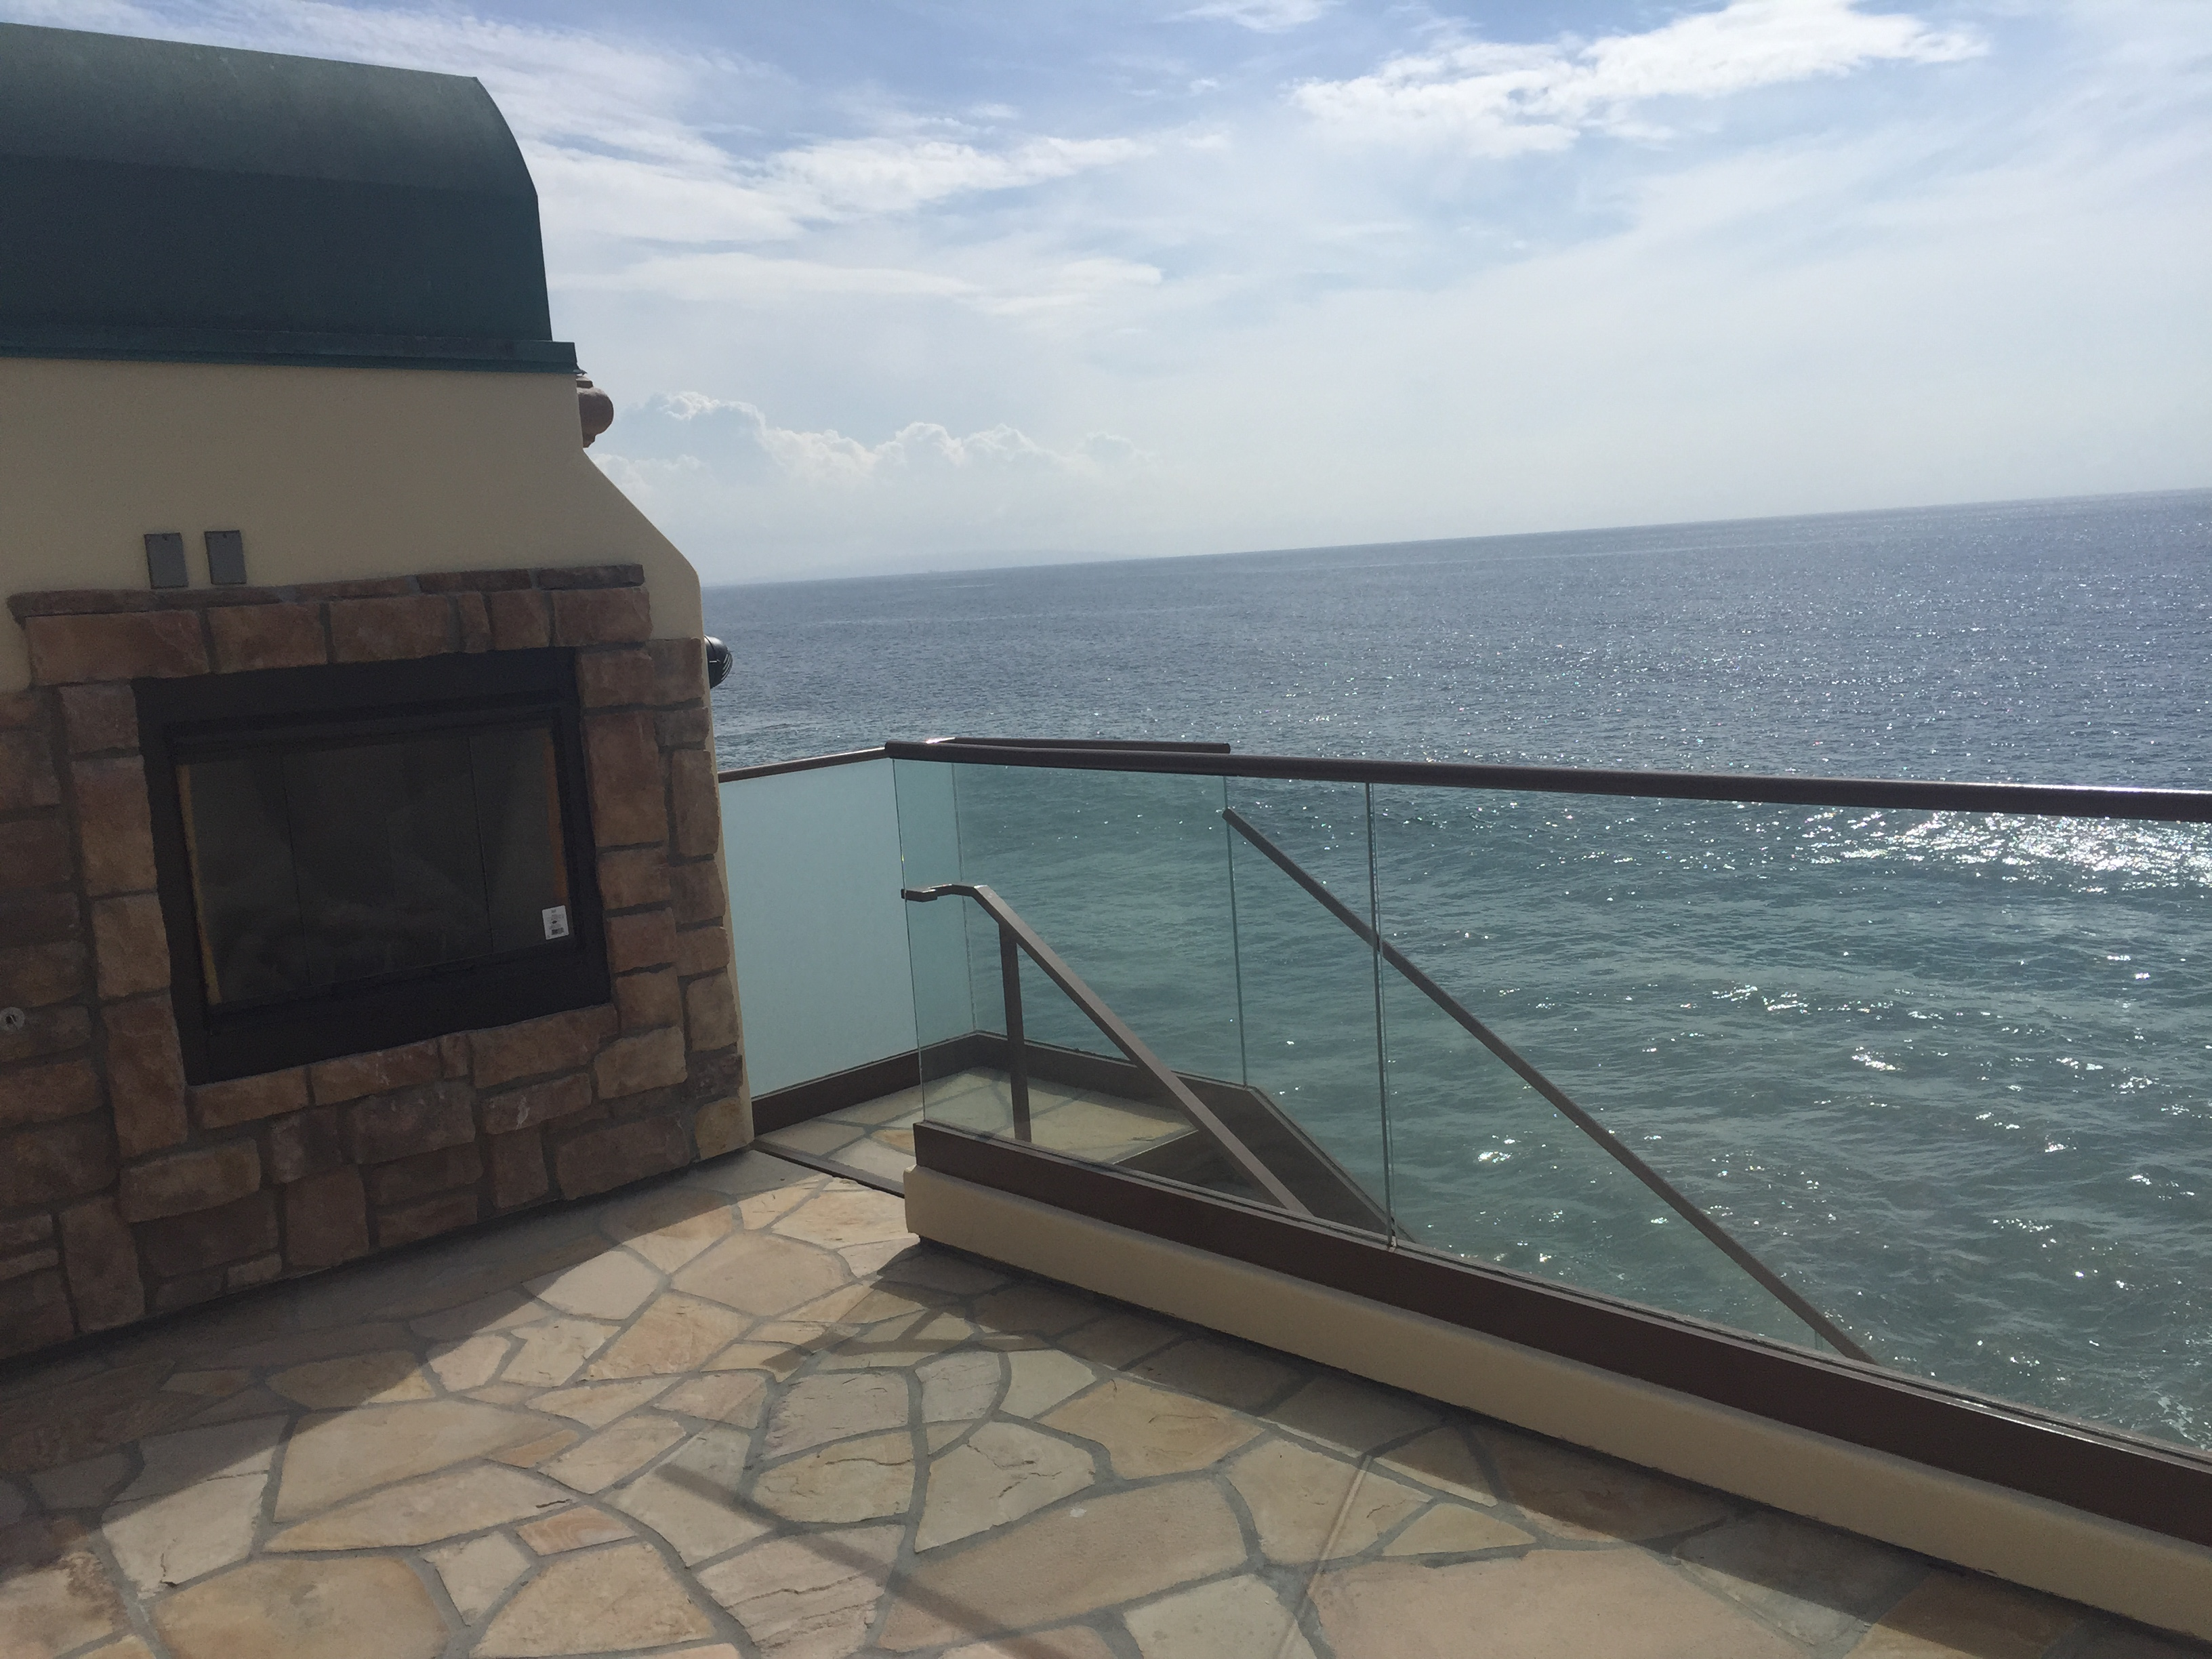 Sliding Patio Screen doors installed in Malibu home